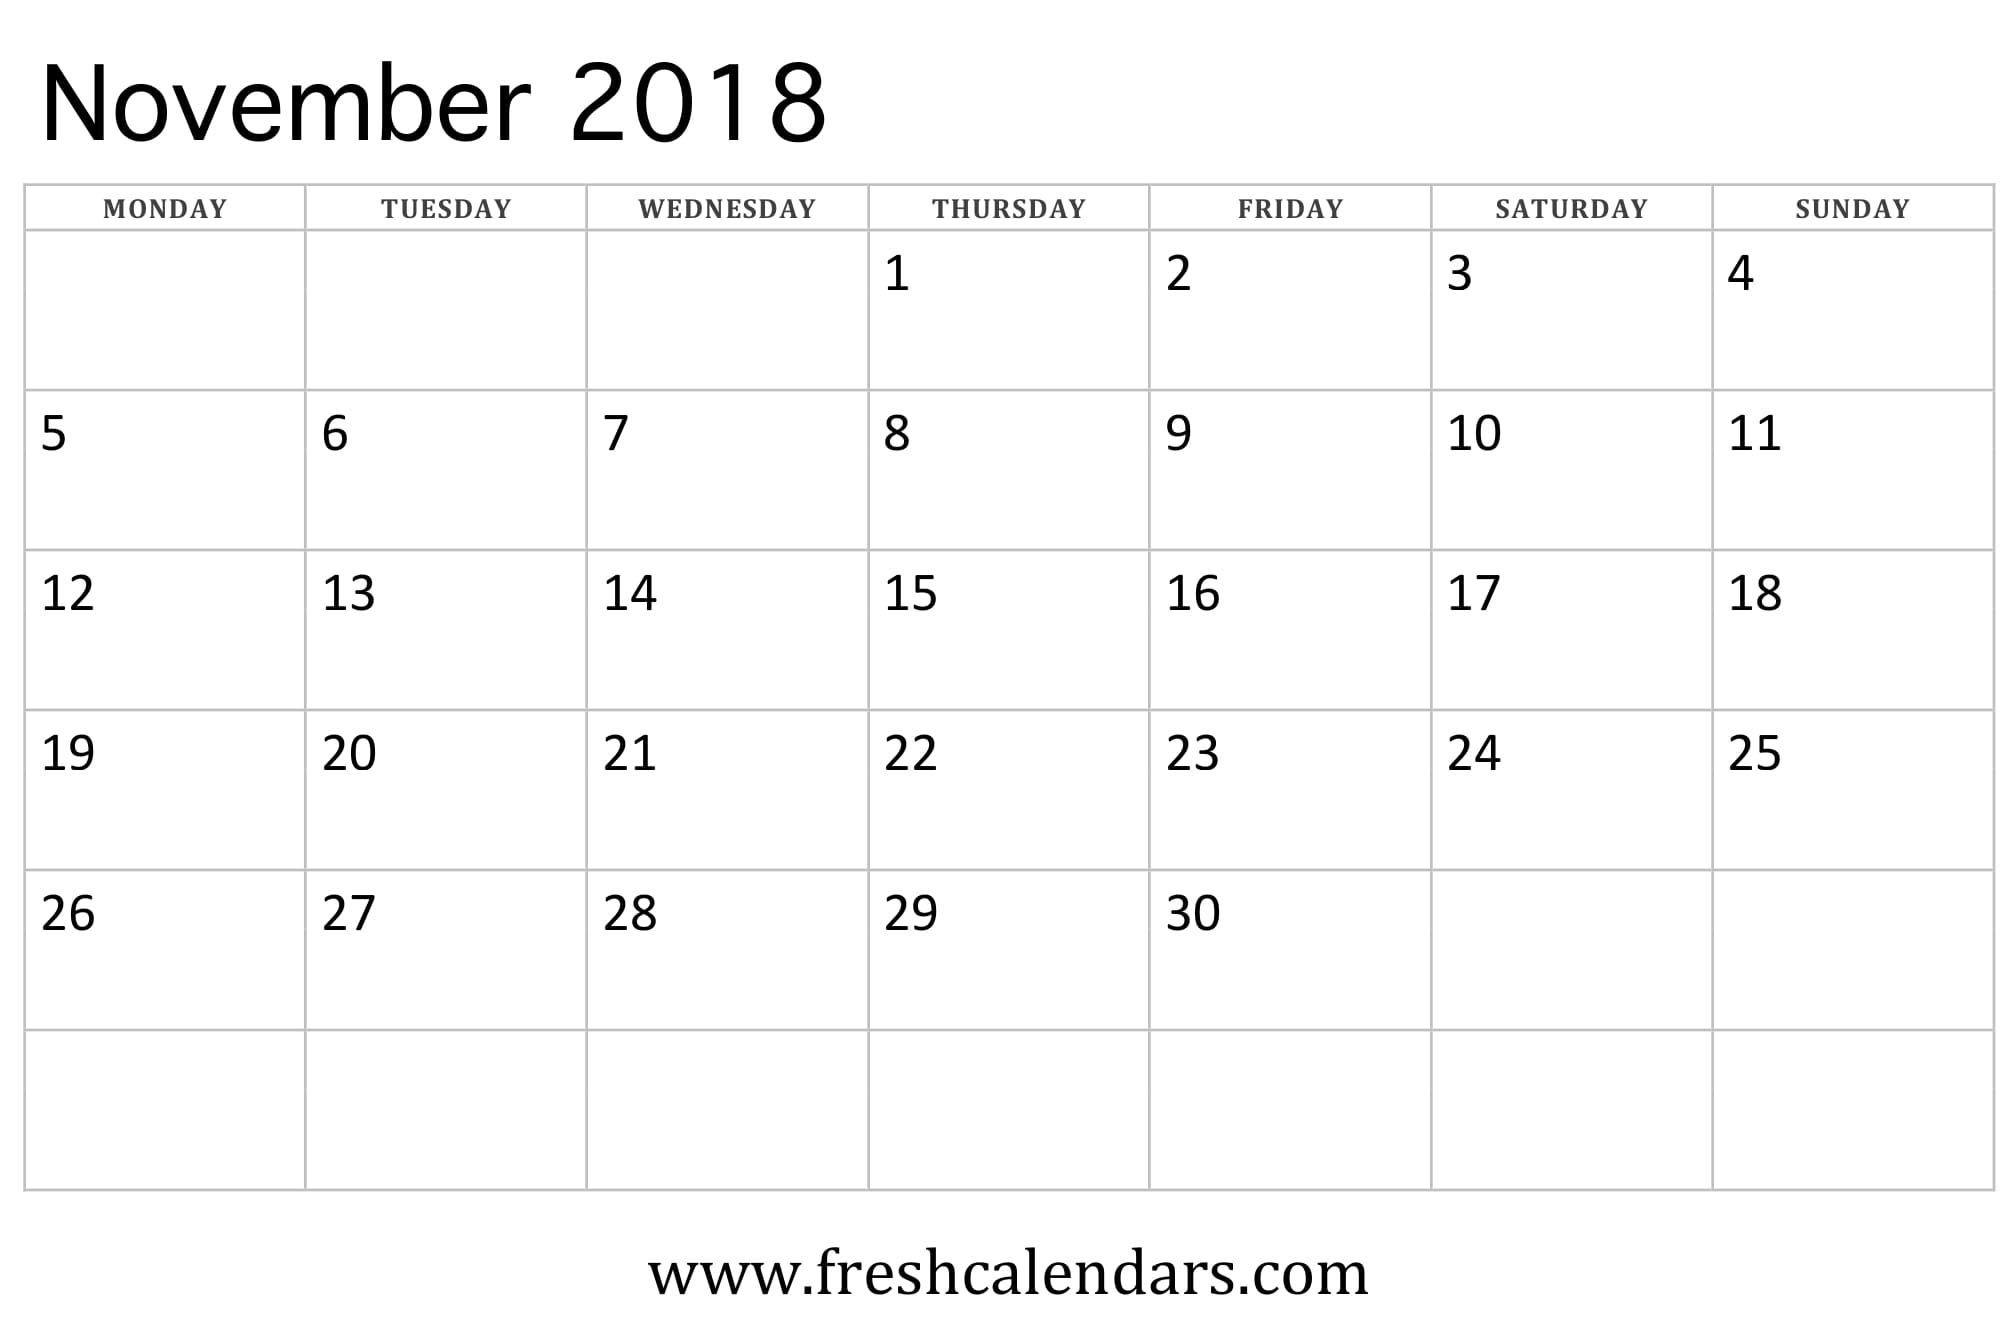 November 2018 Calendar (week starts on monday)